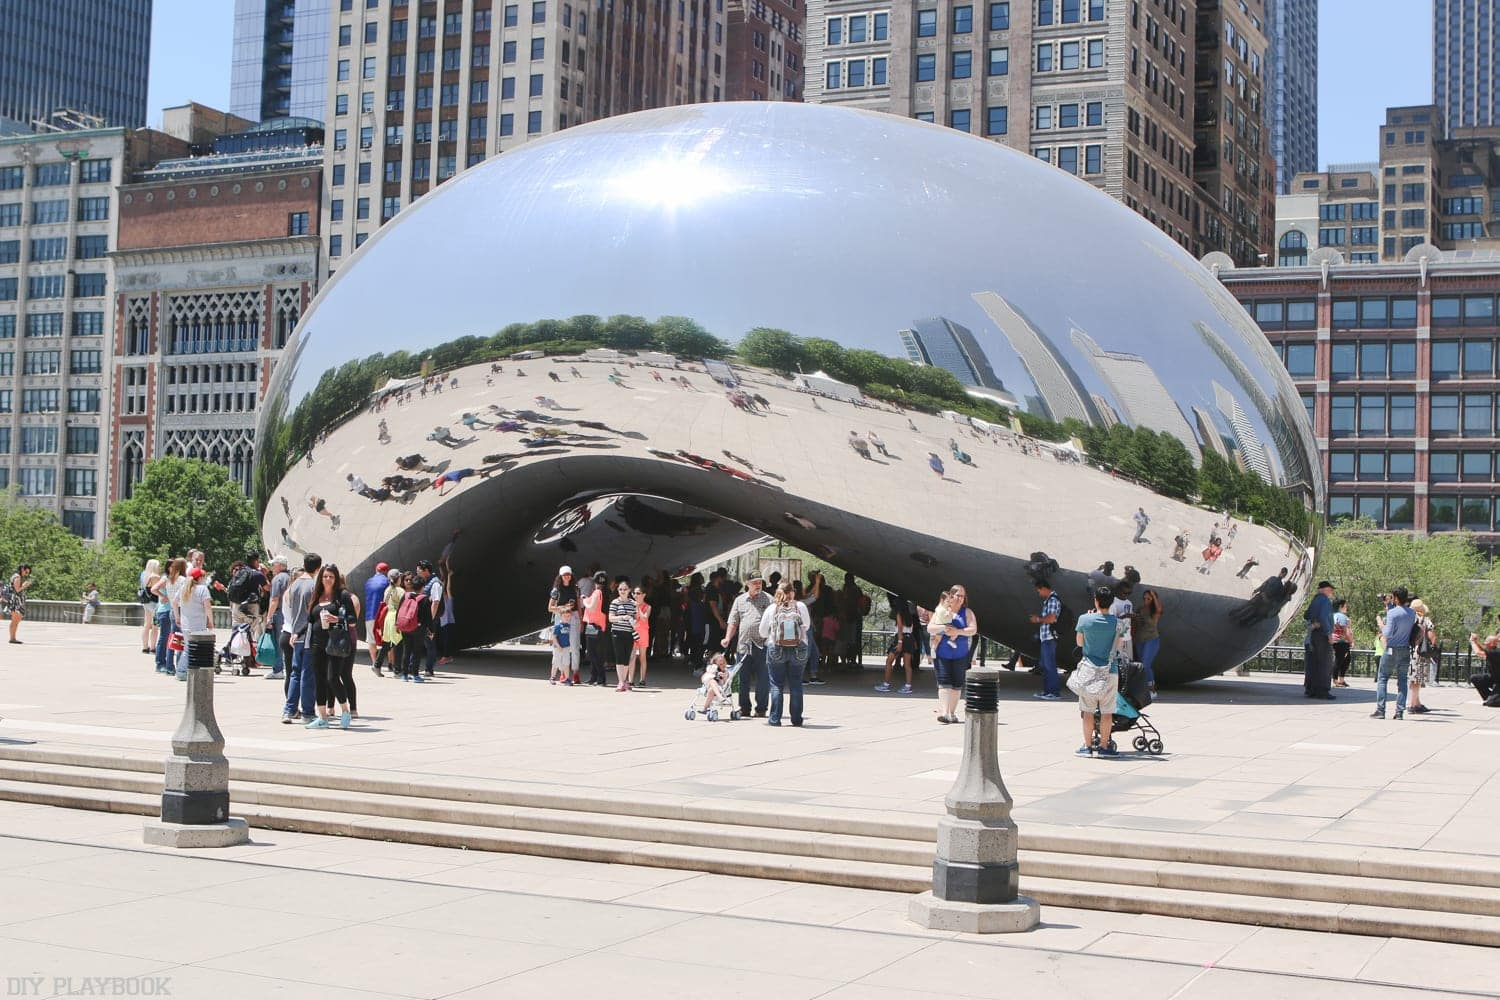 Summer Recap Video: Loving our lives in Chicago! Here we are at the Bean downtown!